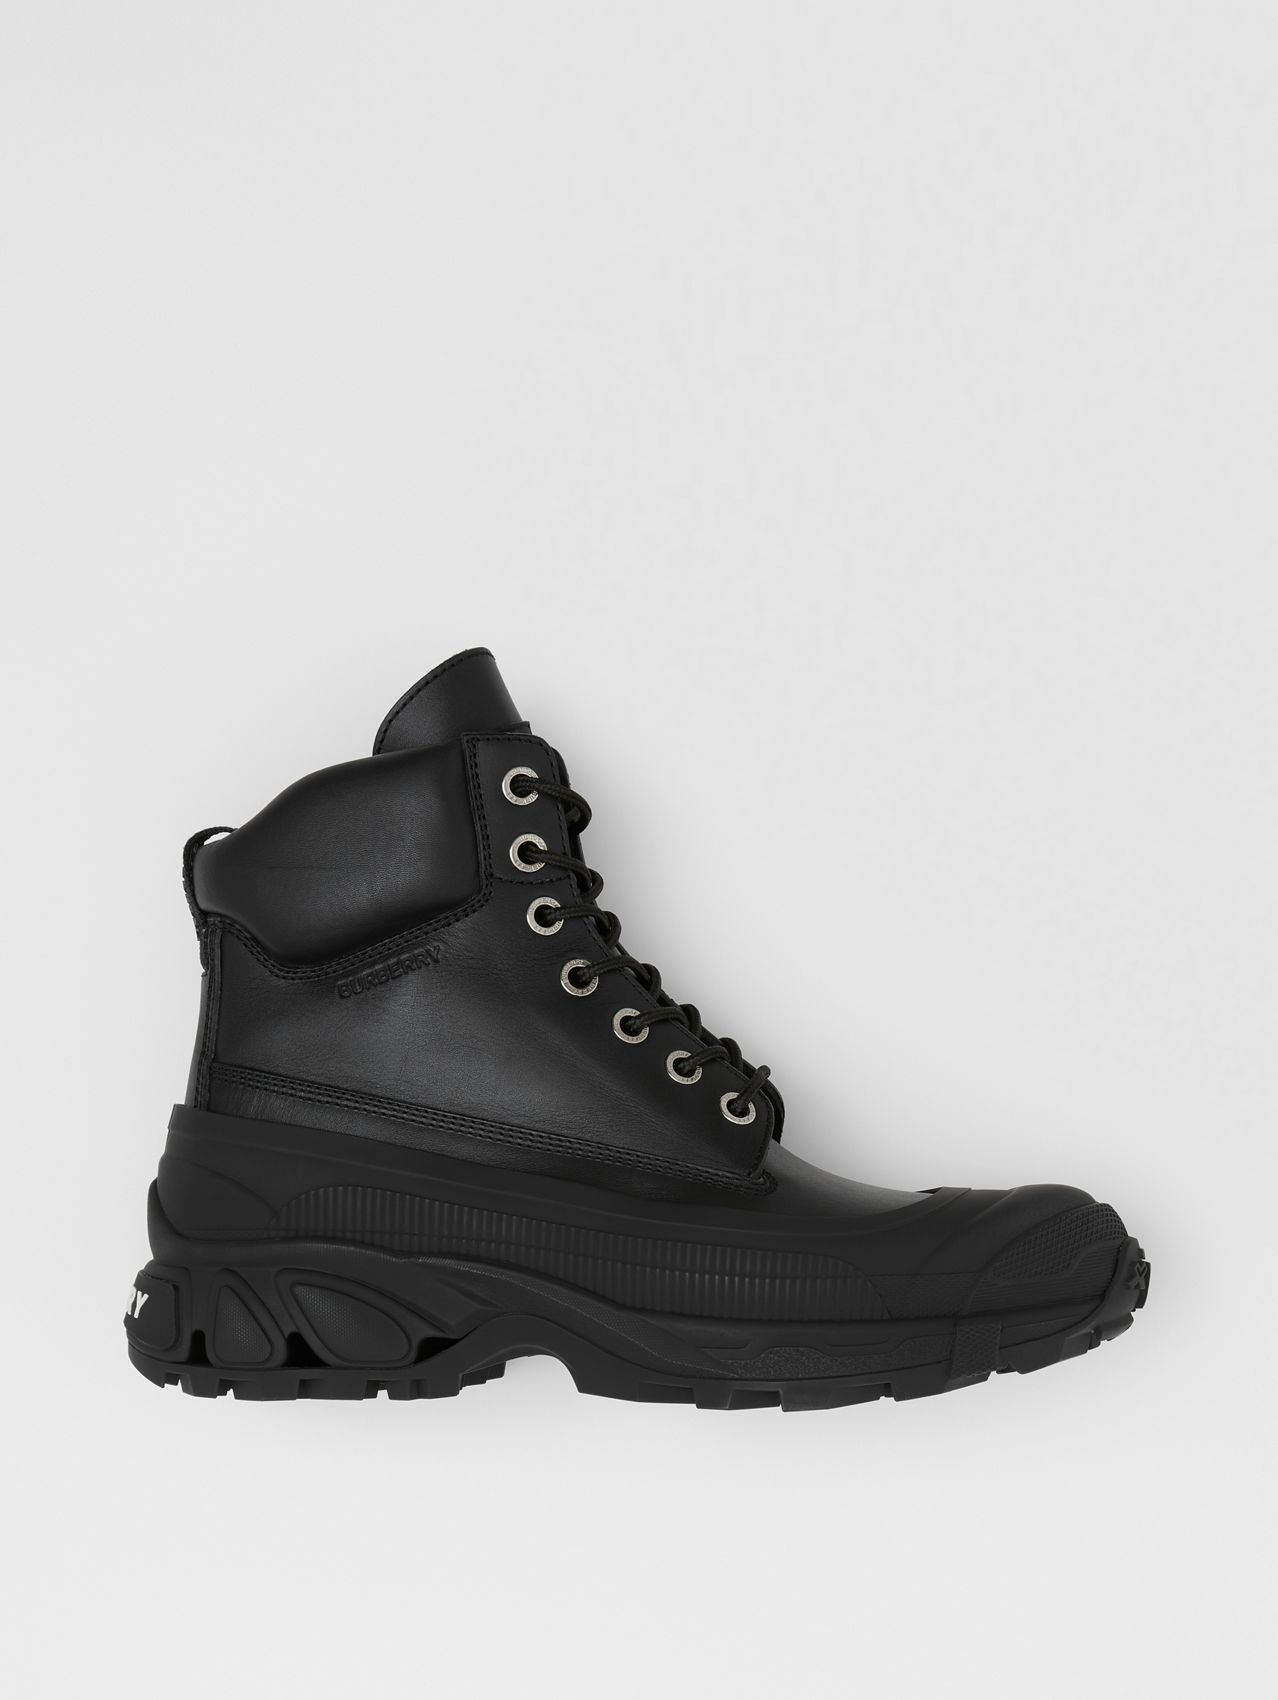 Bottines en cuir (Noir)